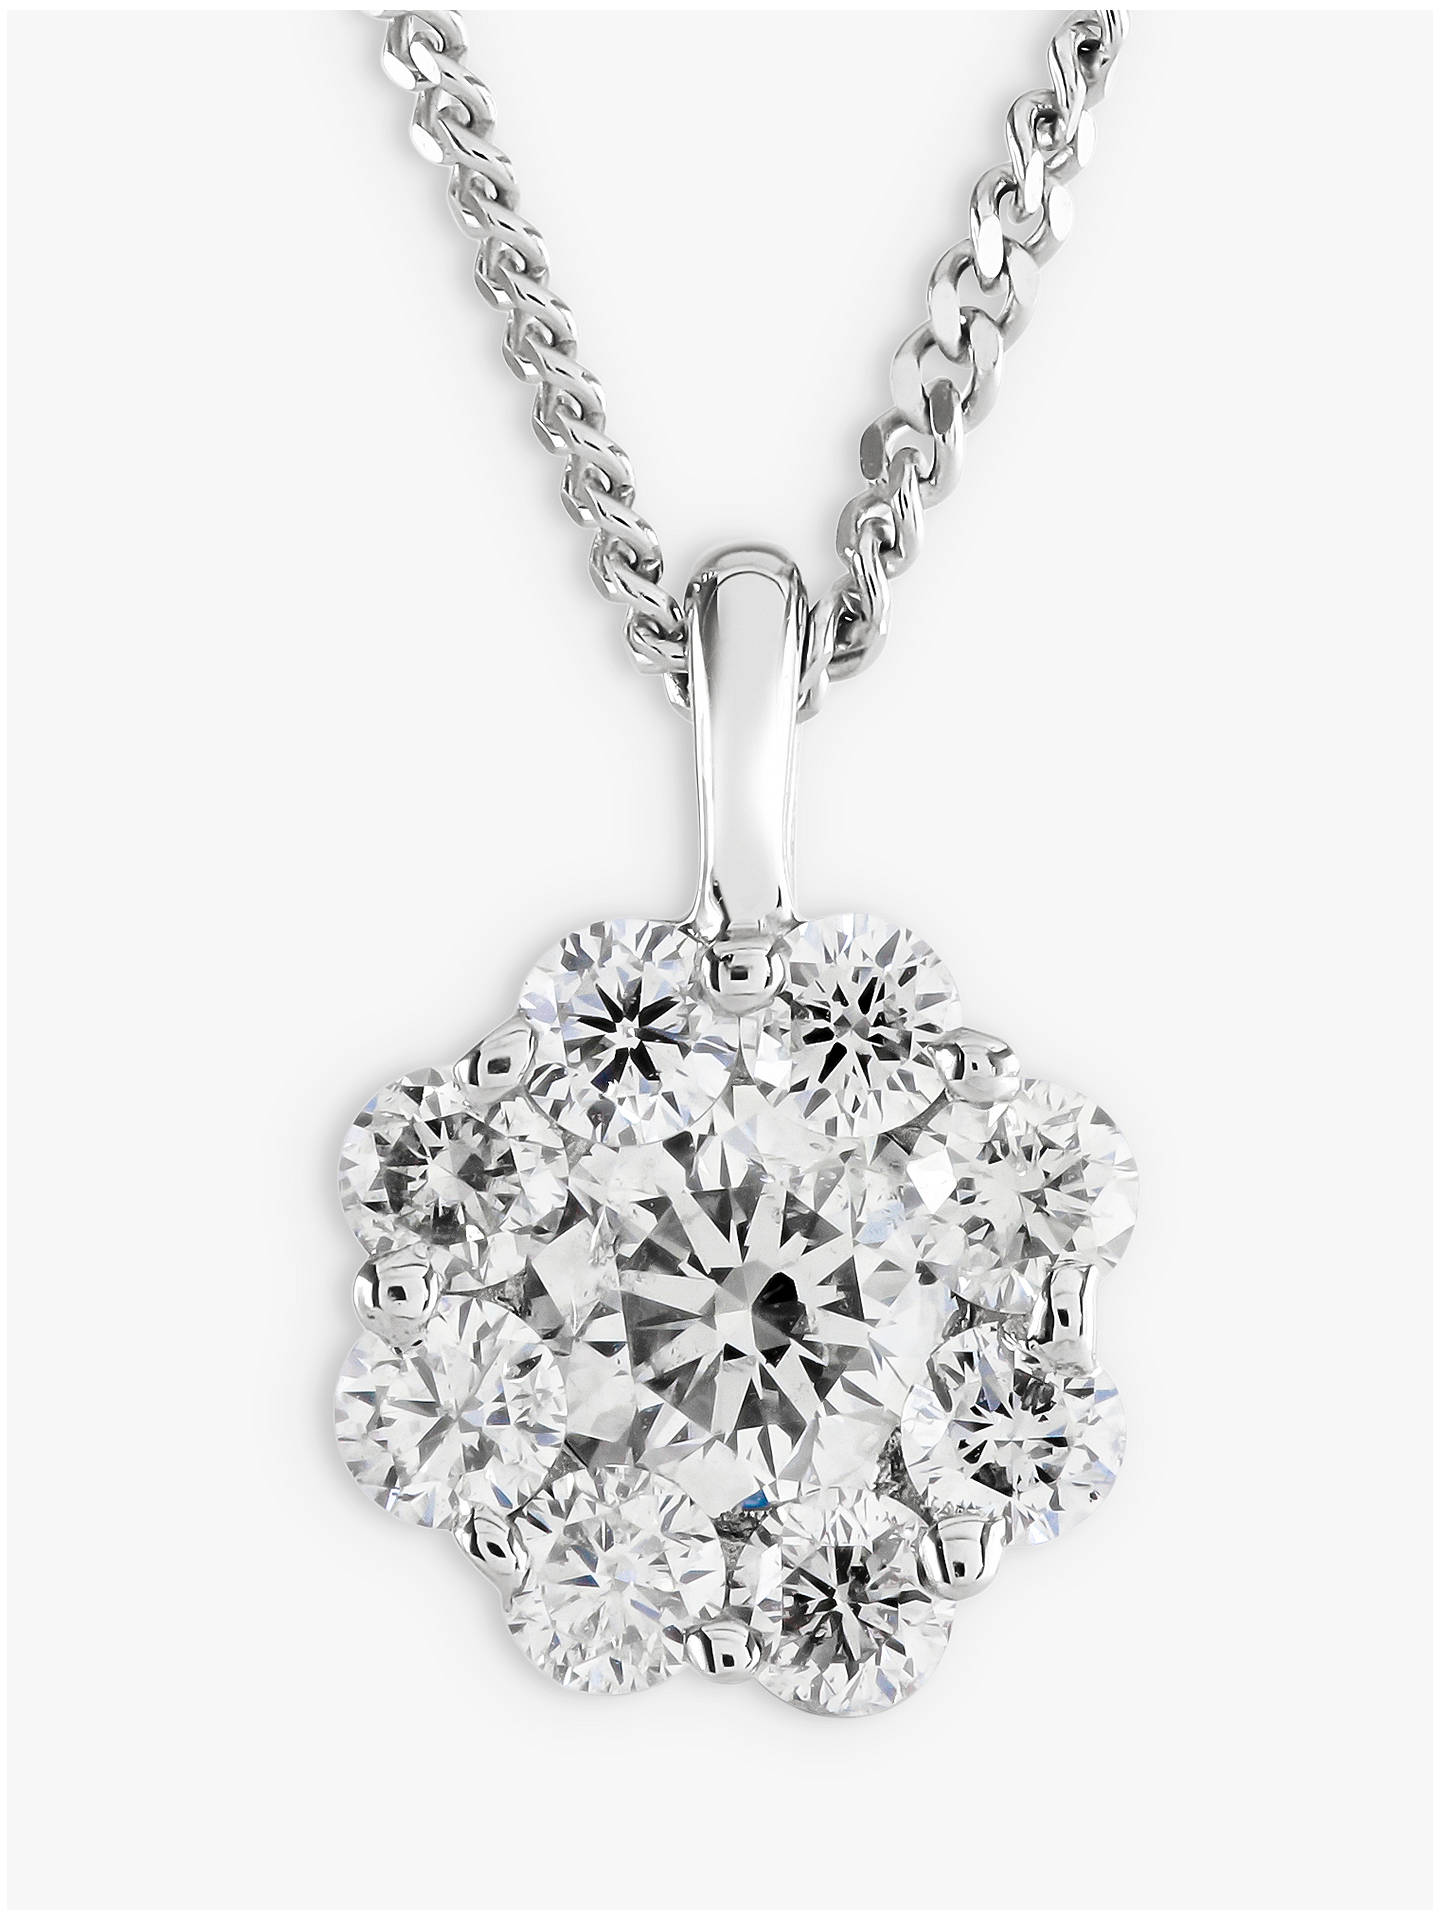 Brown & Newirth 18ct White Gold Diamond Pendant Necklace, 0 50ct